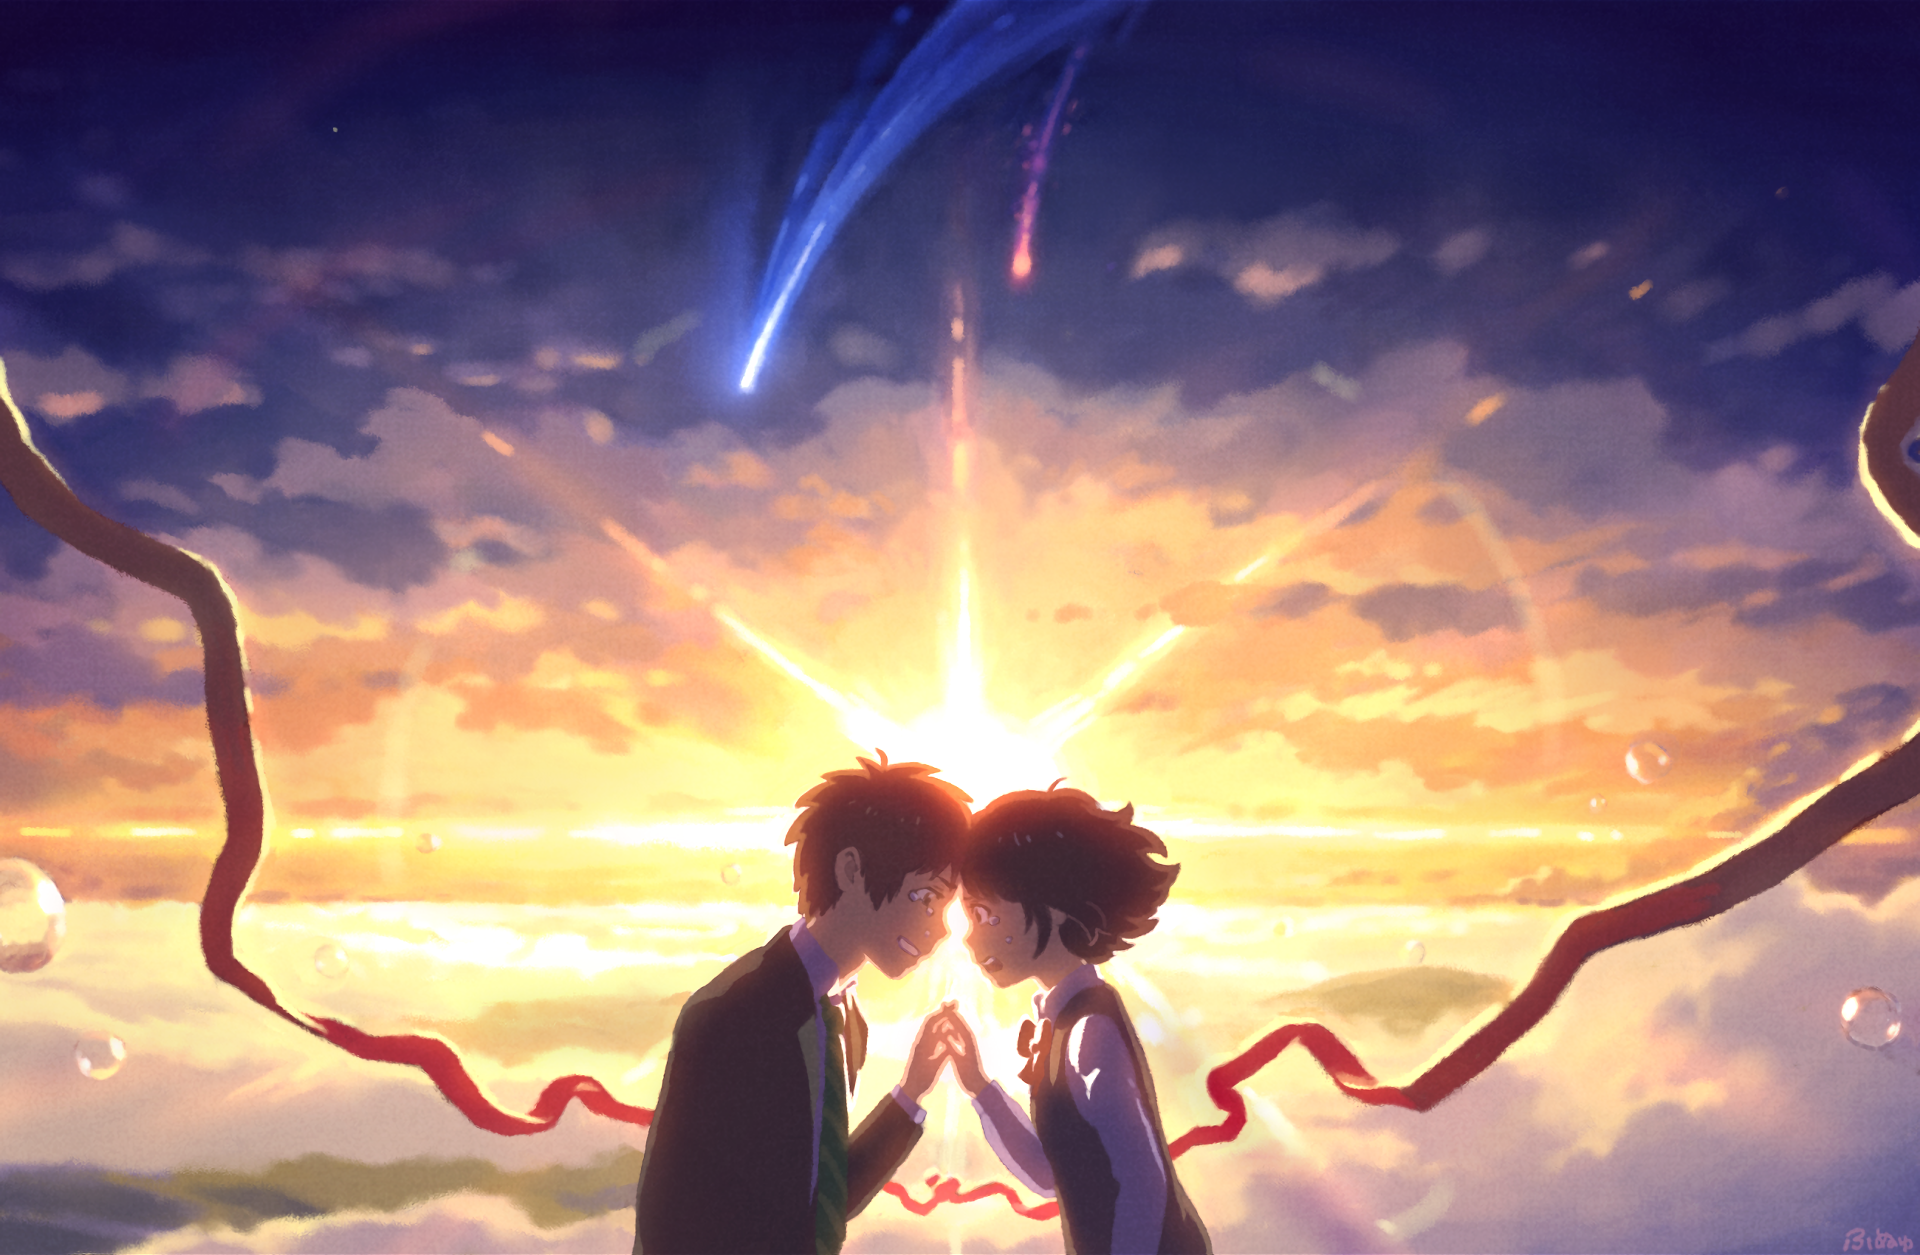 Makoto Shinkai Kimi No Na Wa (Your Name) Wallpaper Full HD